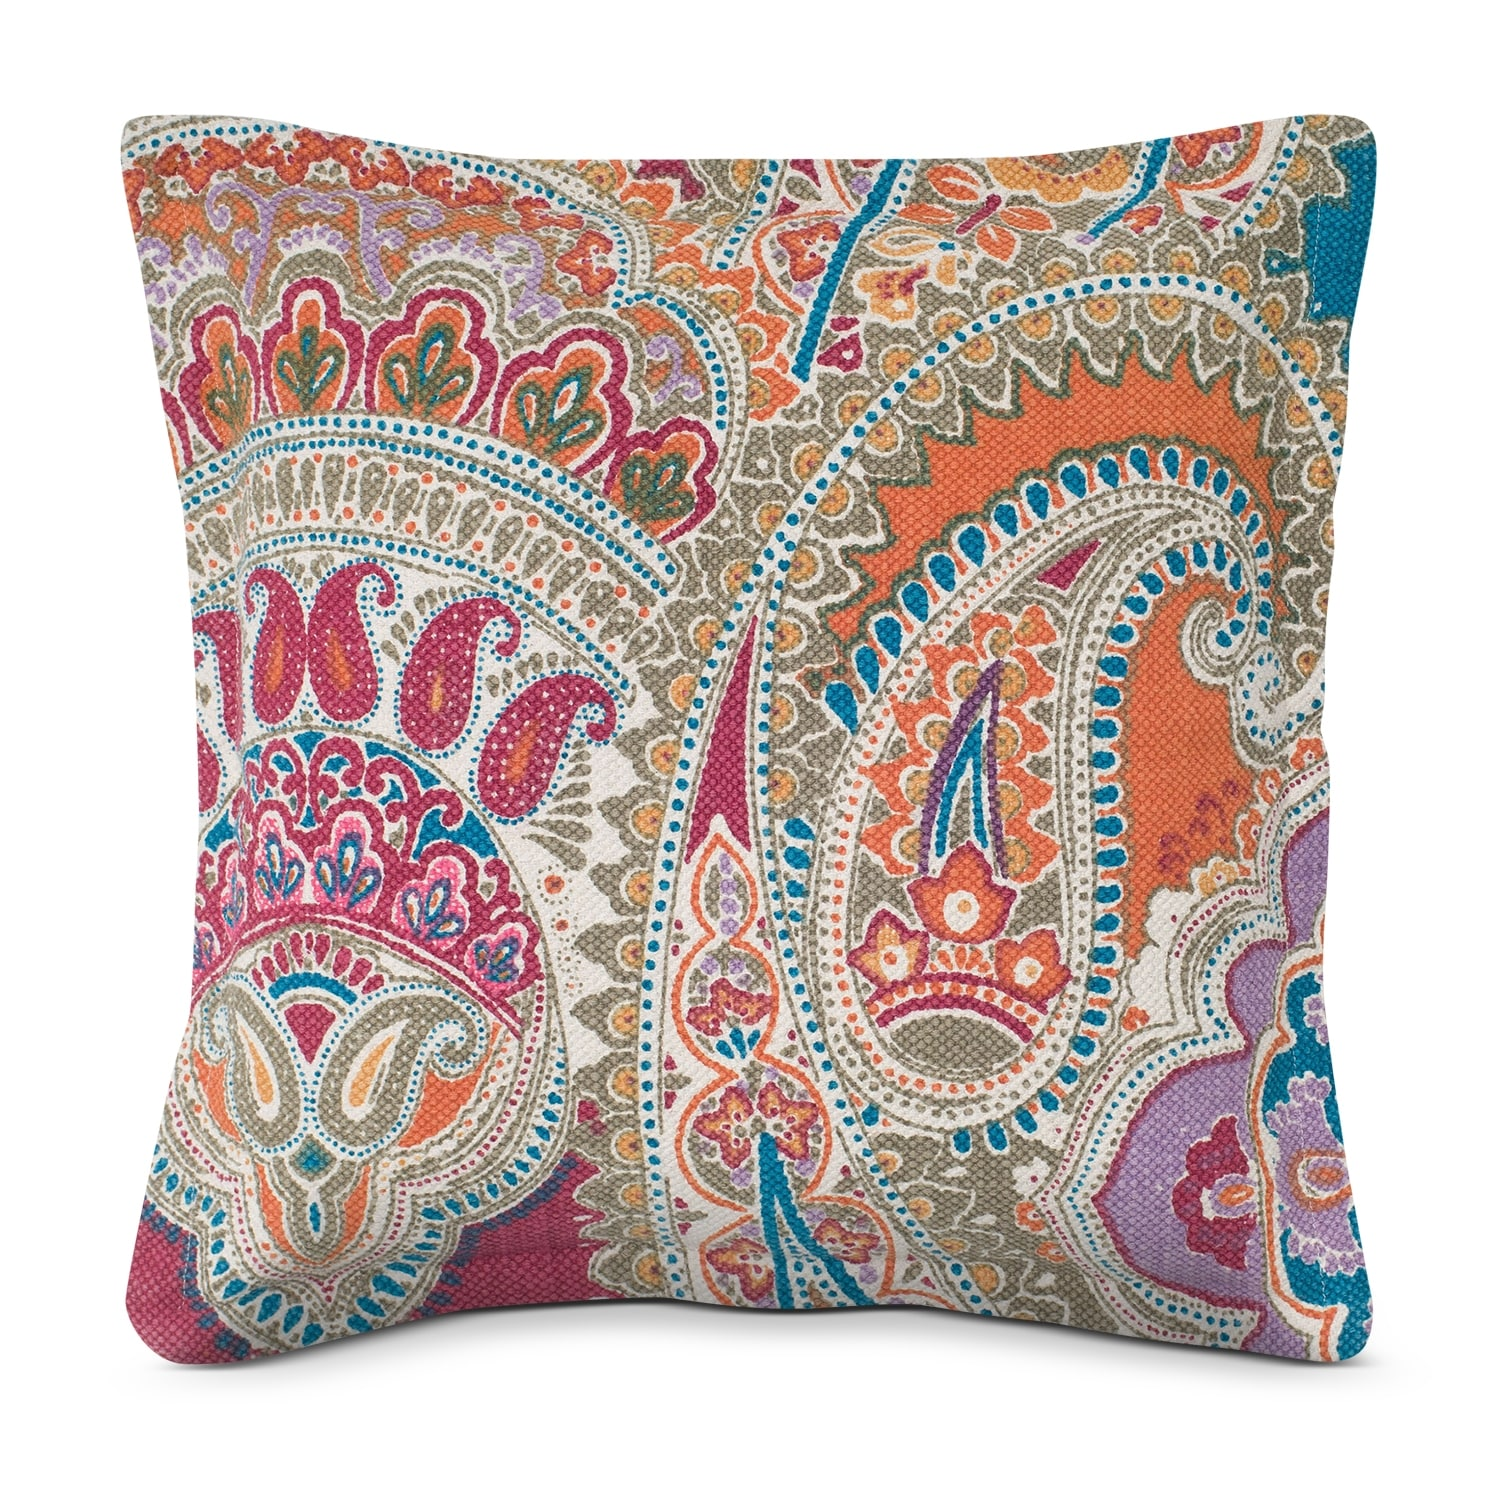 Elsie Decorative Pillow